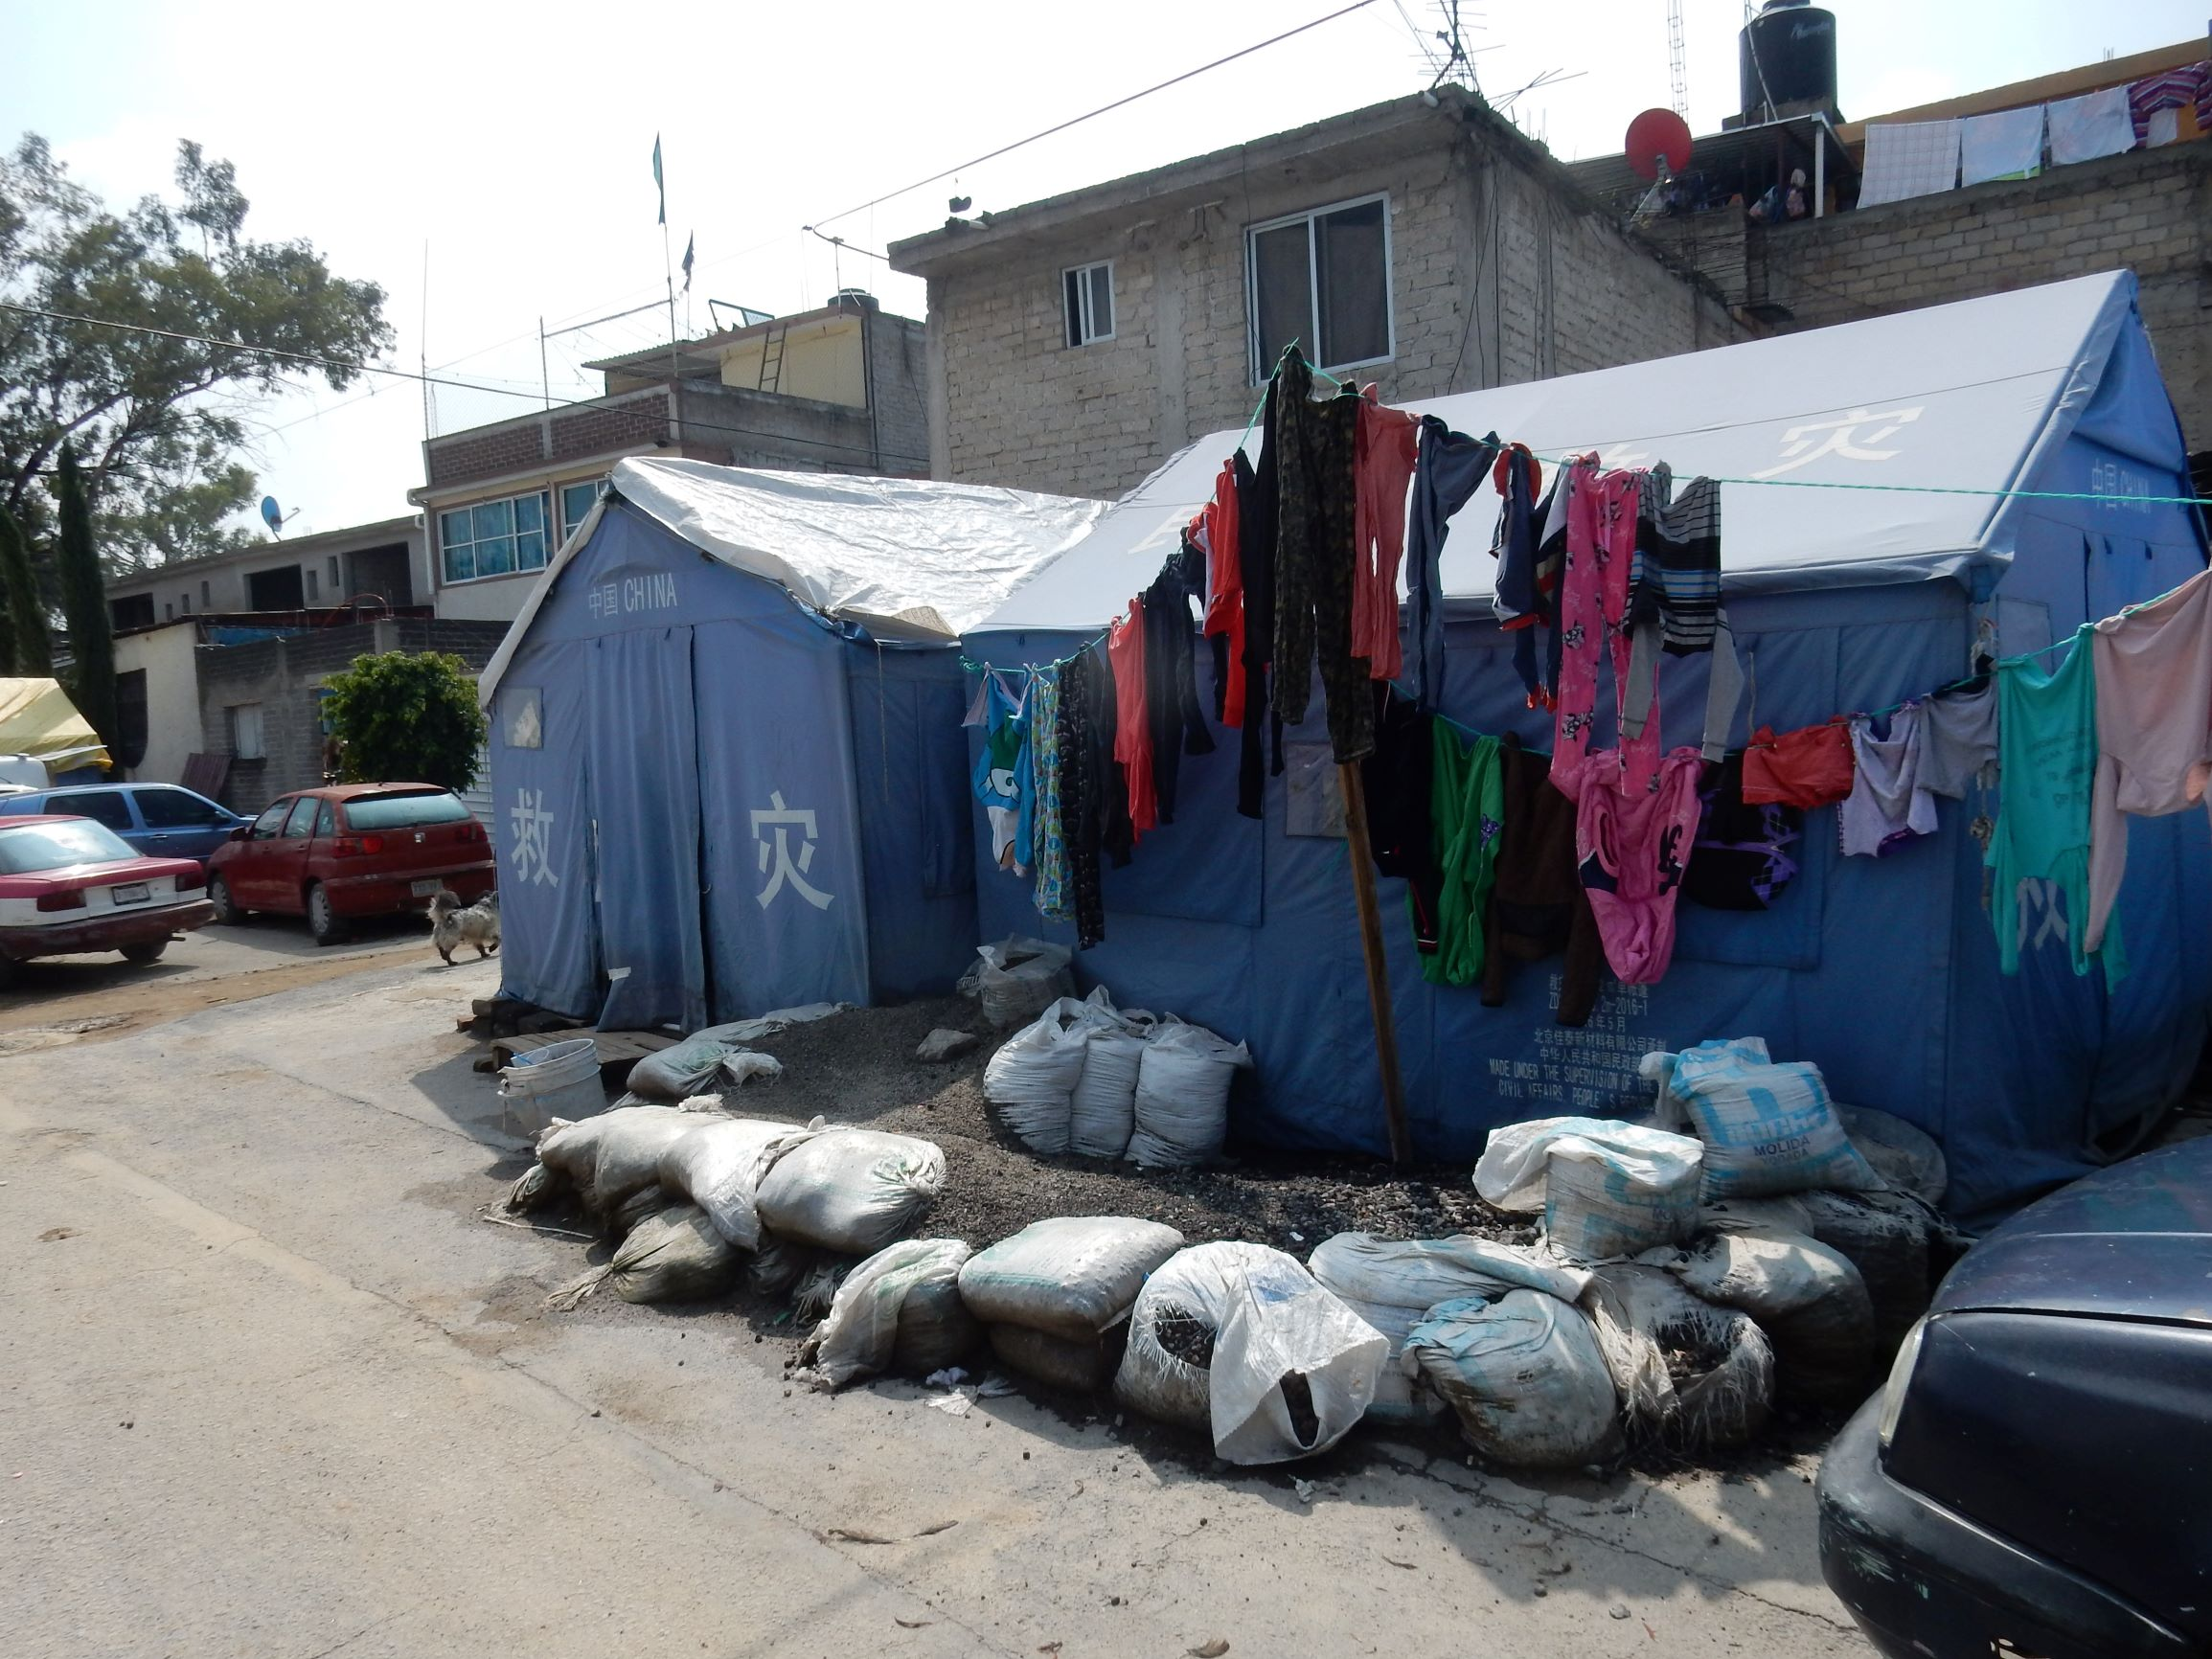 A year after the earthquake, displaced people in Iztapalapa are living in tents at risk of flooding and disease